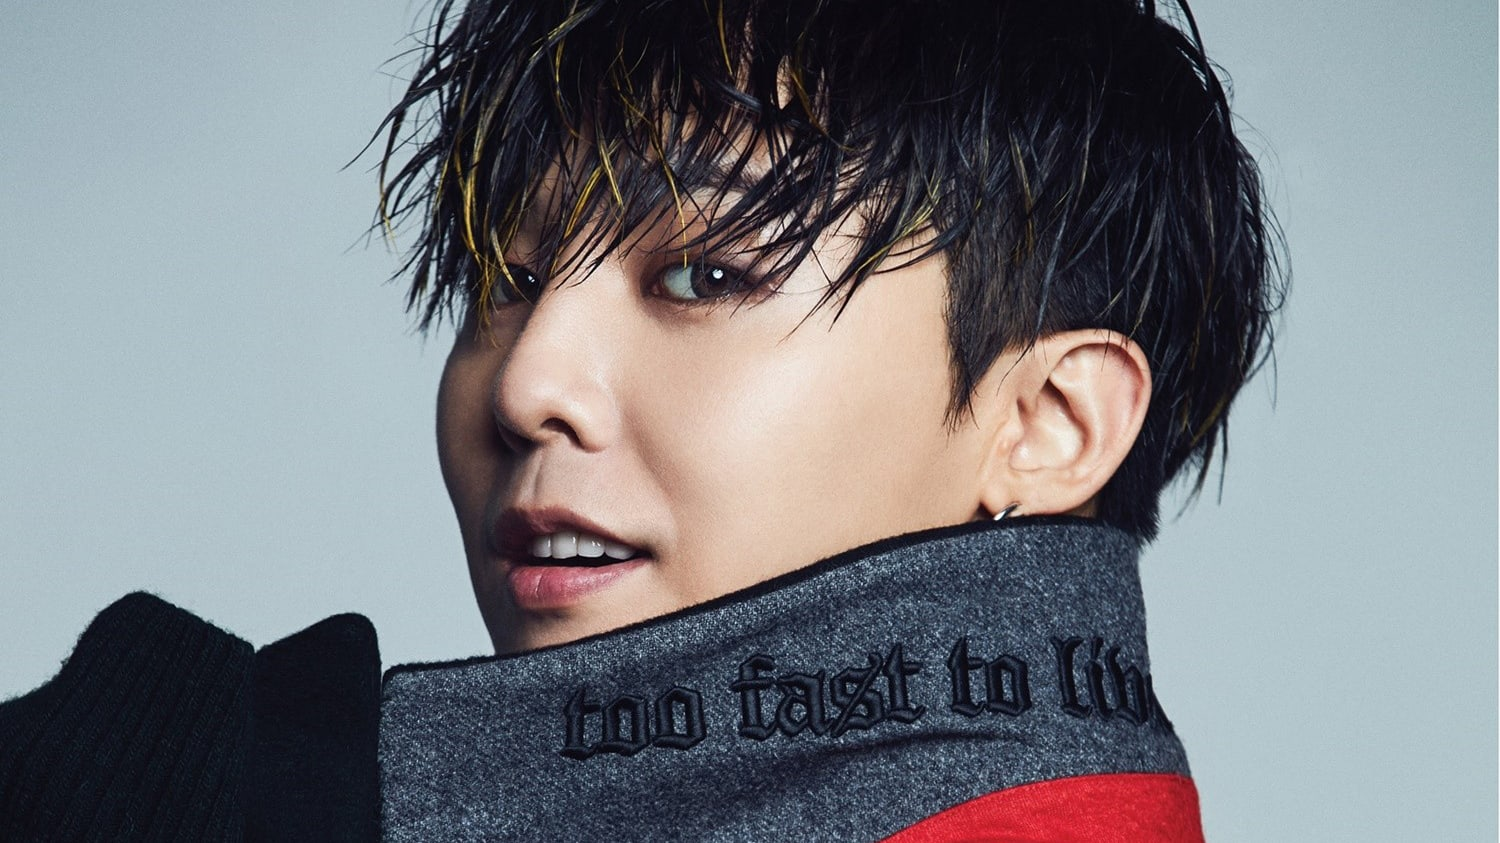 BIGBANG's G-Dragon Belatedly Revealed To Have Made Generous Donations To Children's Hospital